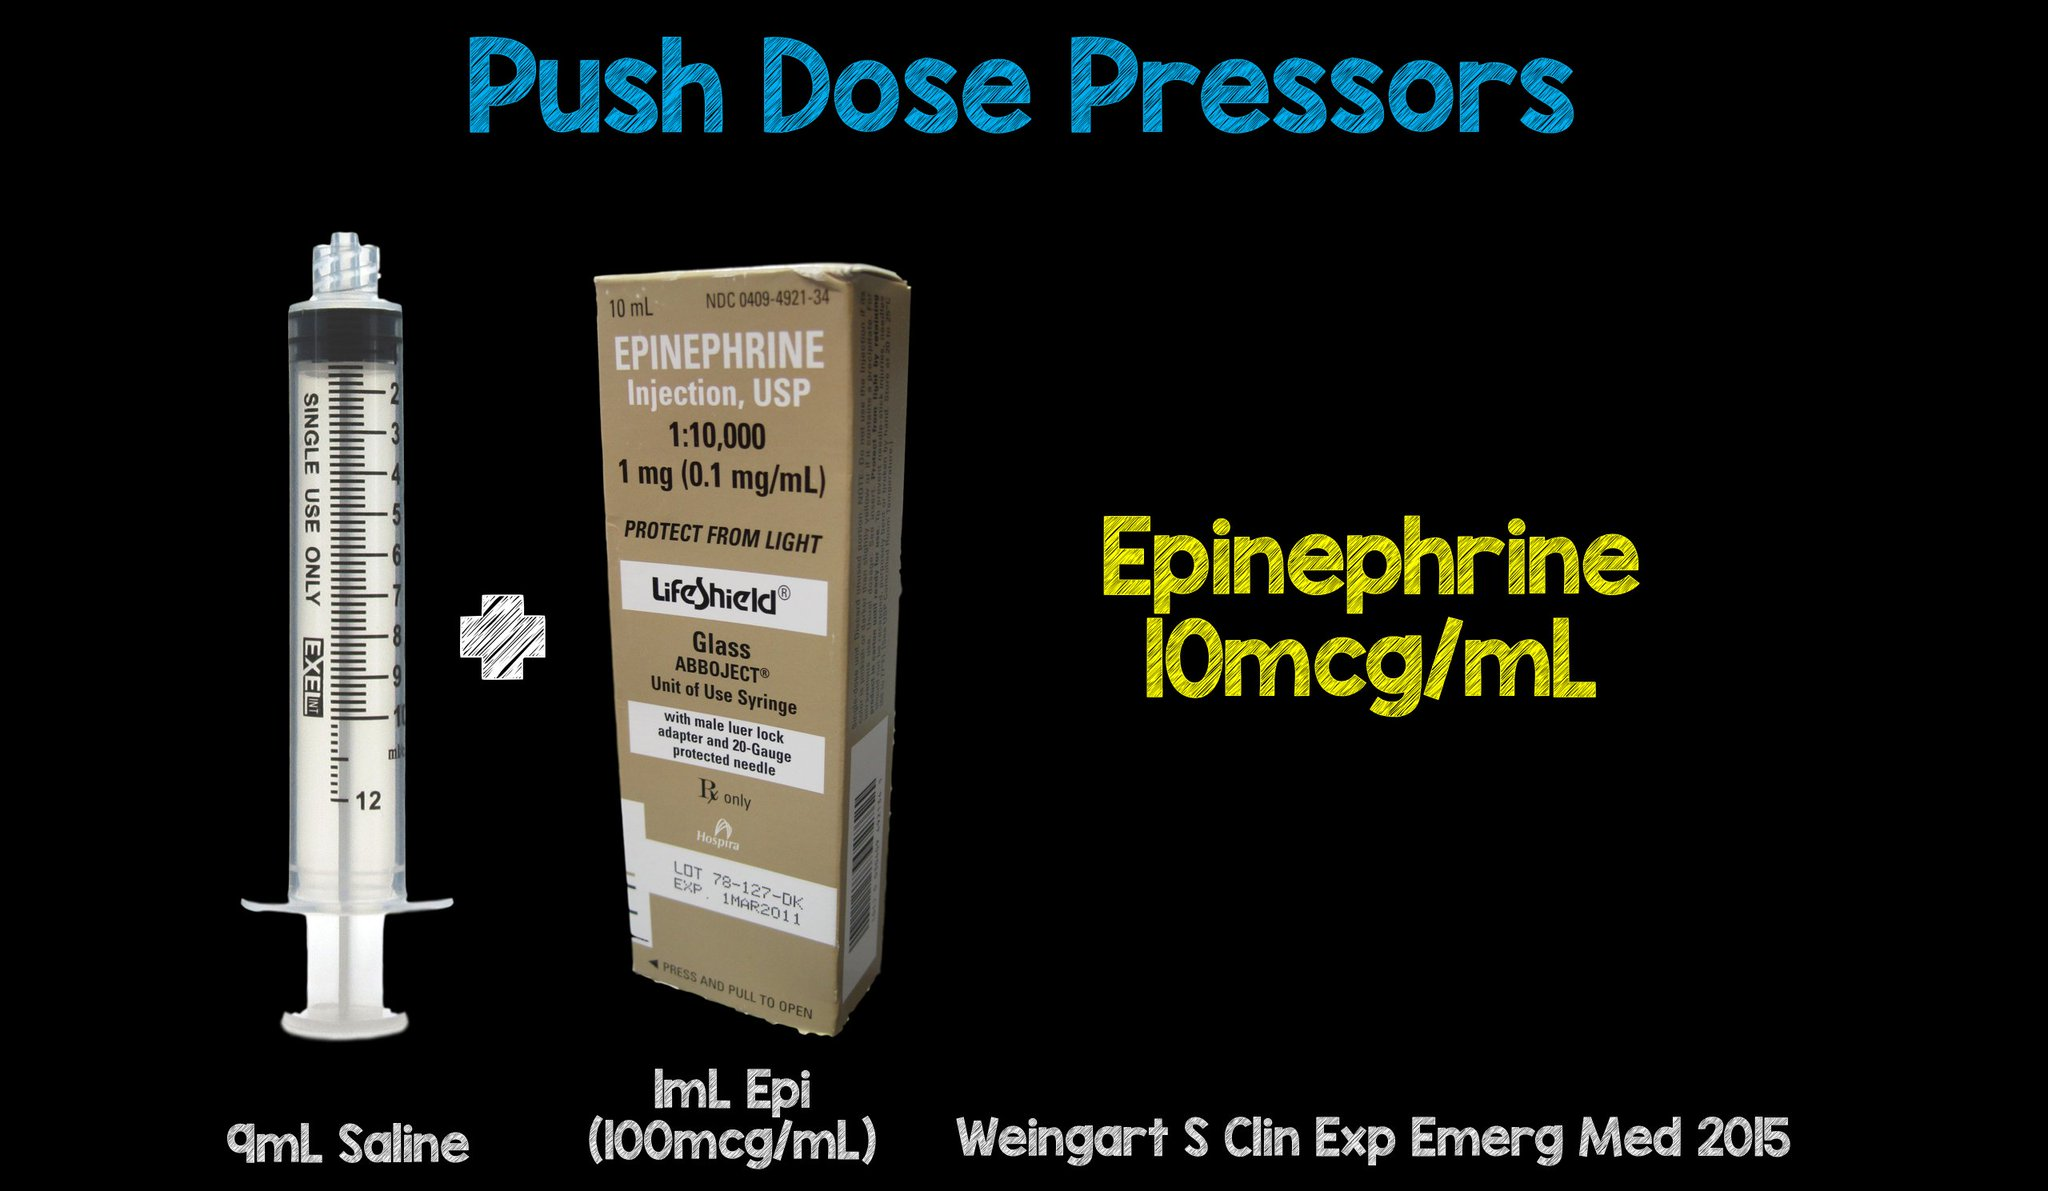 In Critical Pts, Push Dose Pressors Can Buy You Time, But Realize the Evidence is Not Robust @critcareguys #ACEP17 https://t.co/uOezYI6RUU